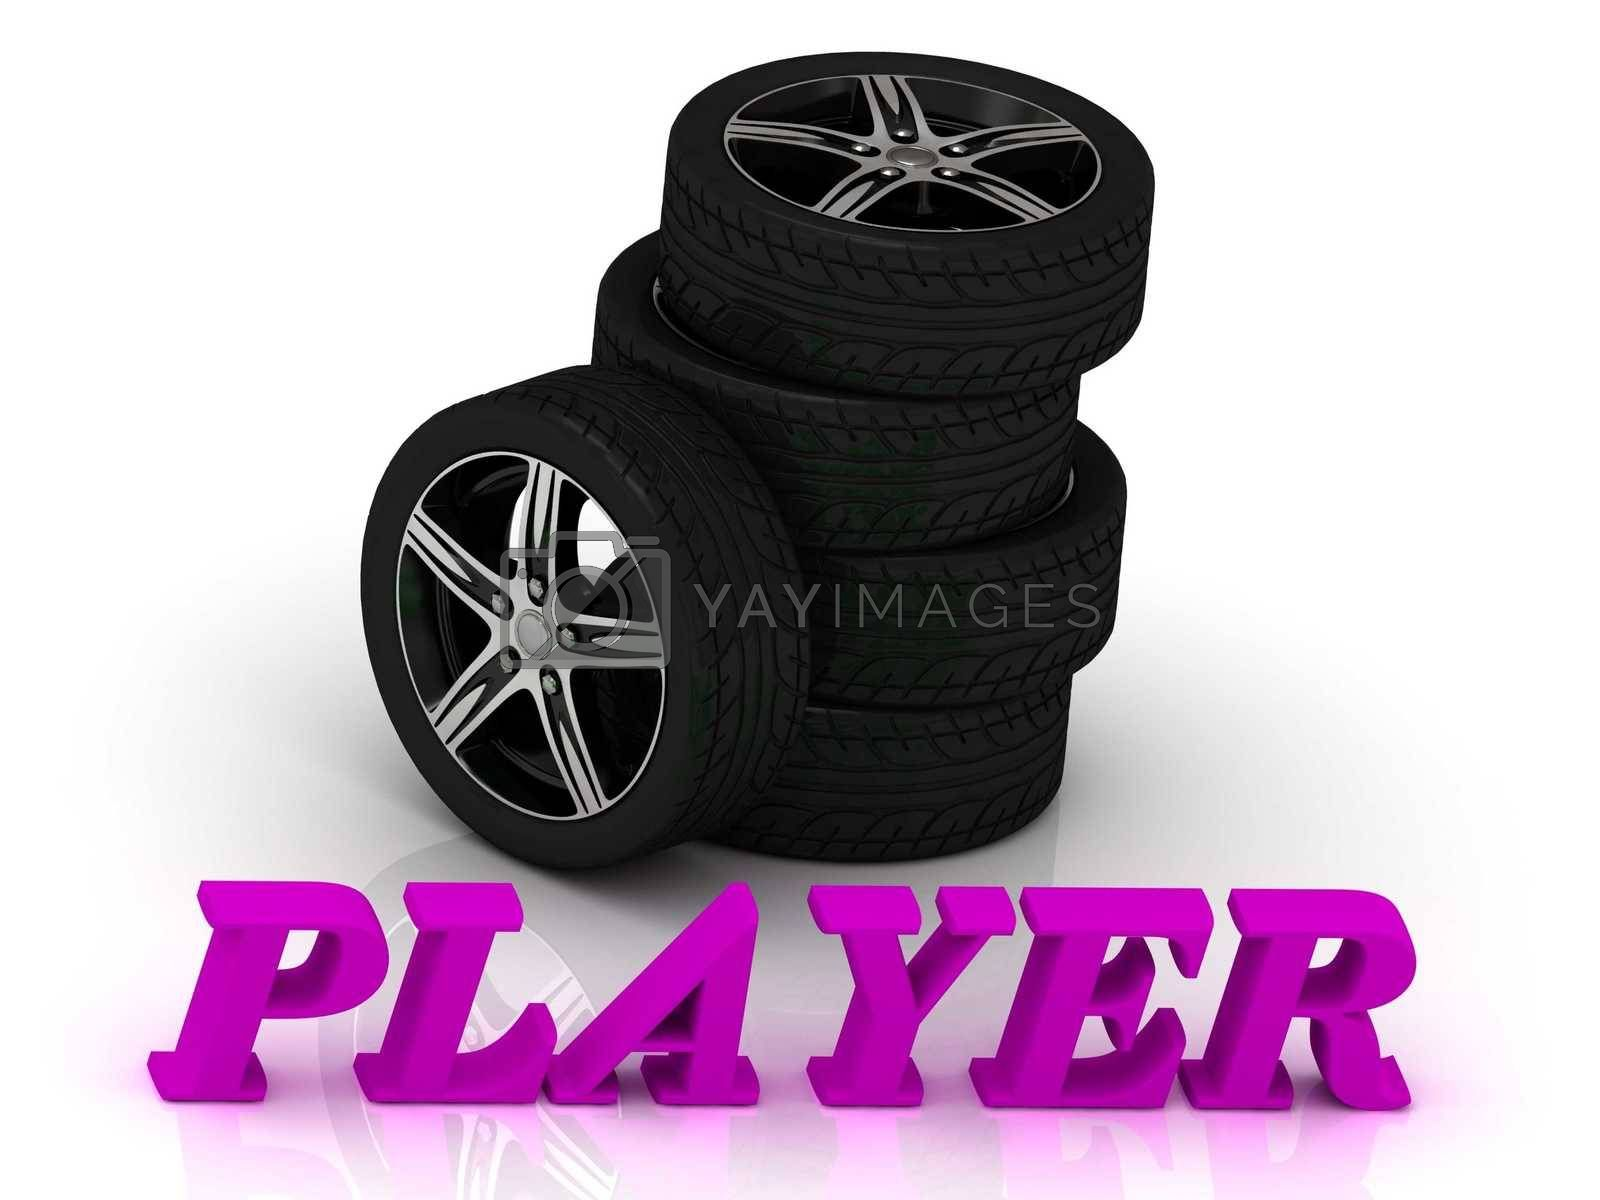 PLAYER- bright letters and rims mashine black wheels on a white background